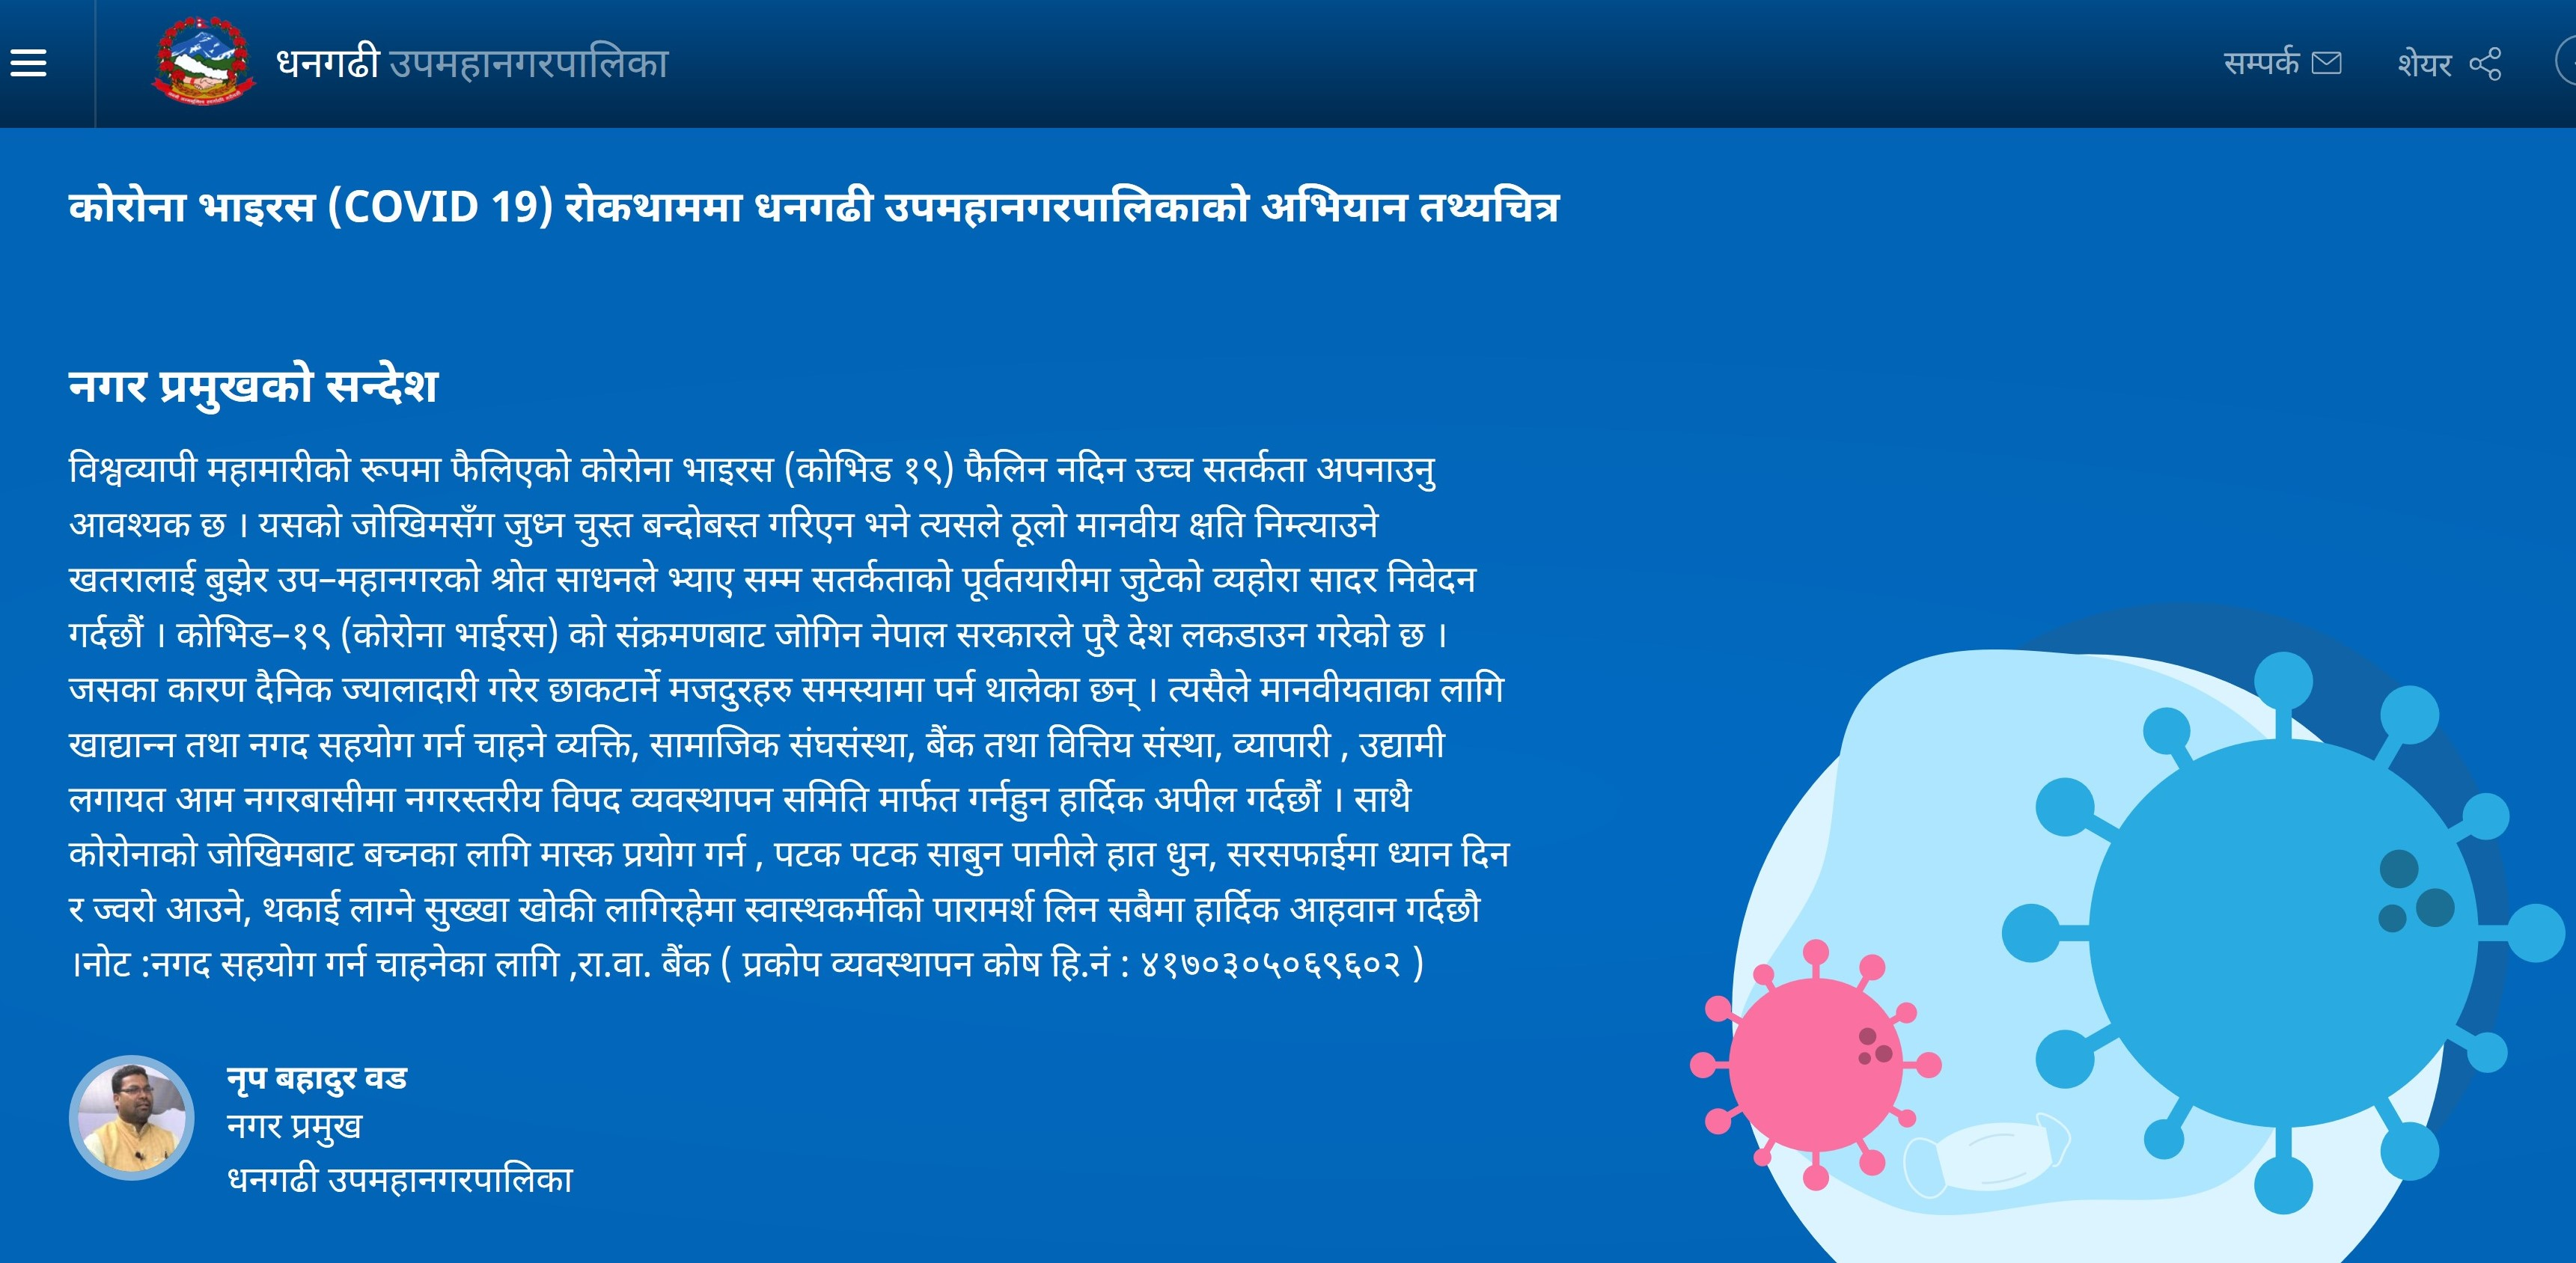 A view of the COVID-19 related website launched by Dhangadhi Sub-Metropolitan City.